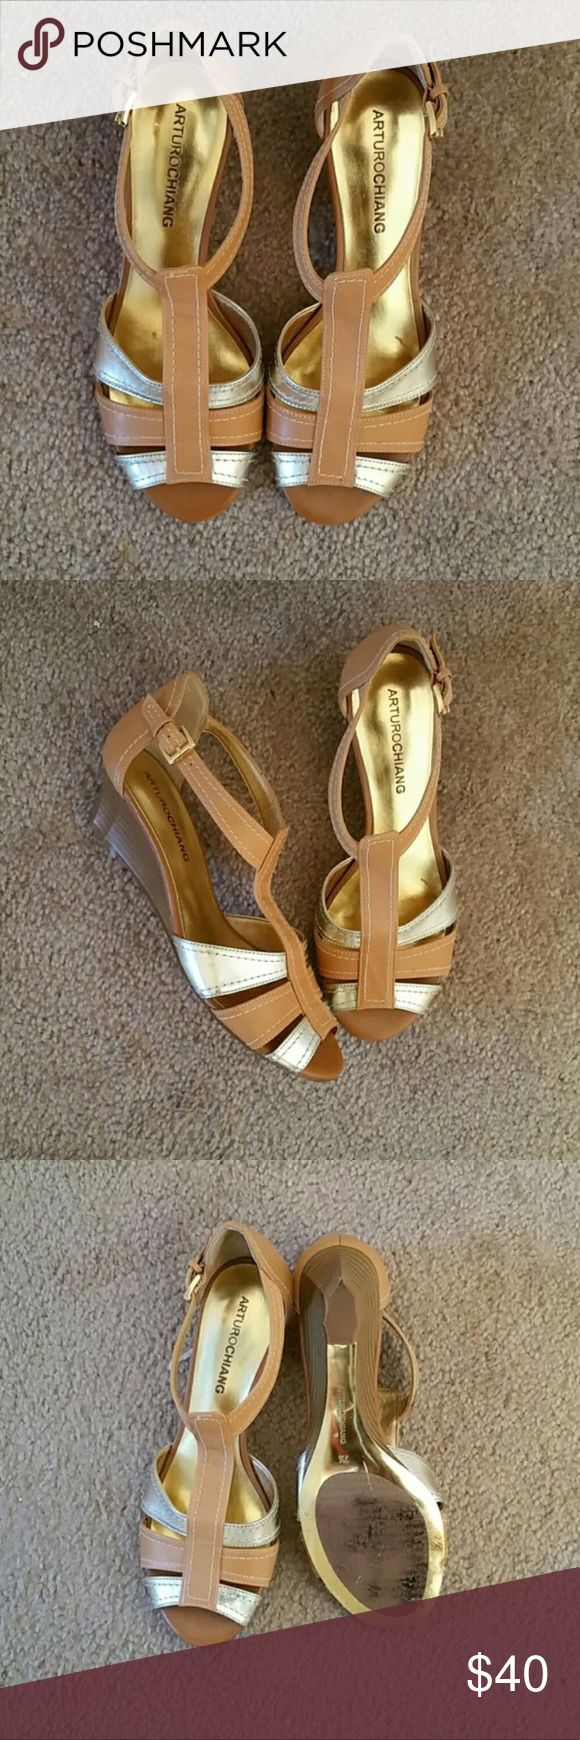 Silver and Tan Wedge Shoe Gently Worn. NO TRADES. Arturo Chiang Shoes Sandals